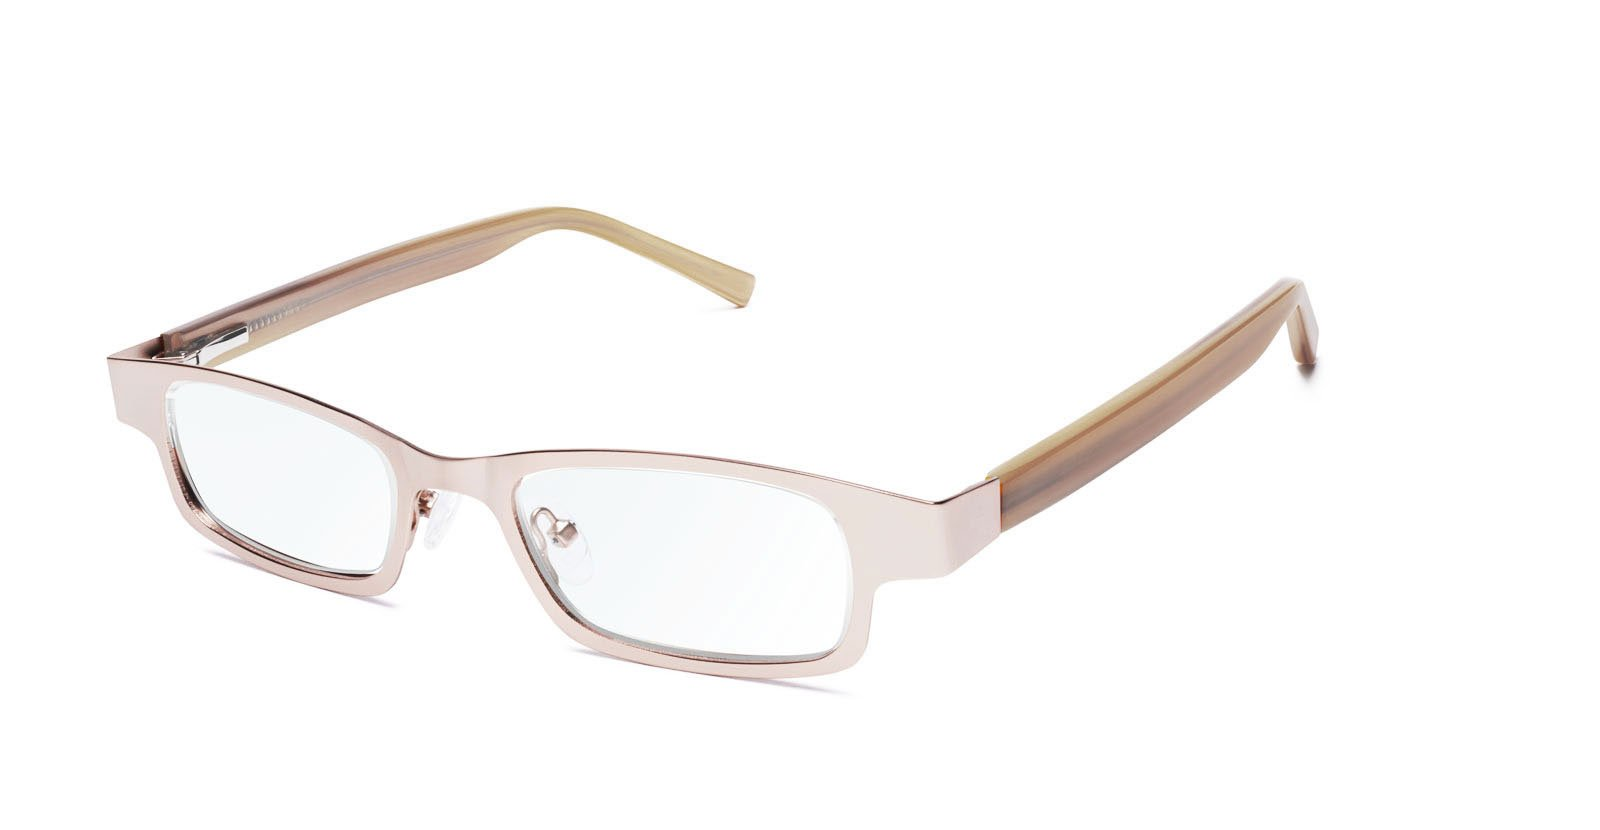 Eyejusters Self-Adjustable Glasses, Combination, Gold & Horn